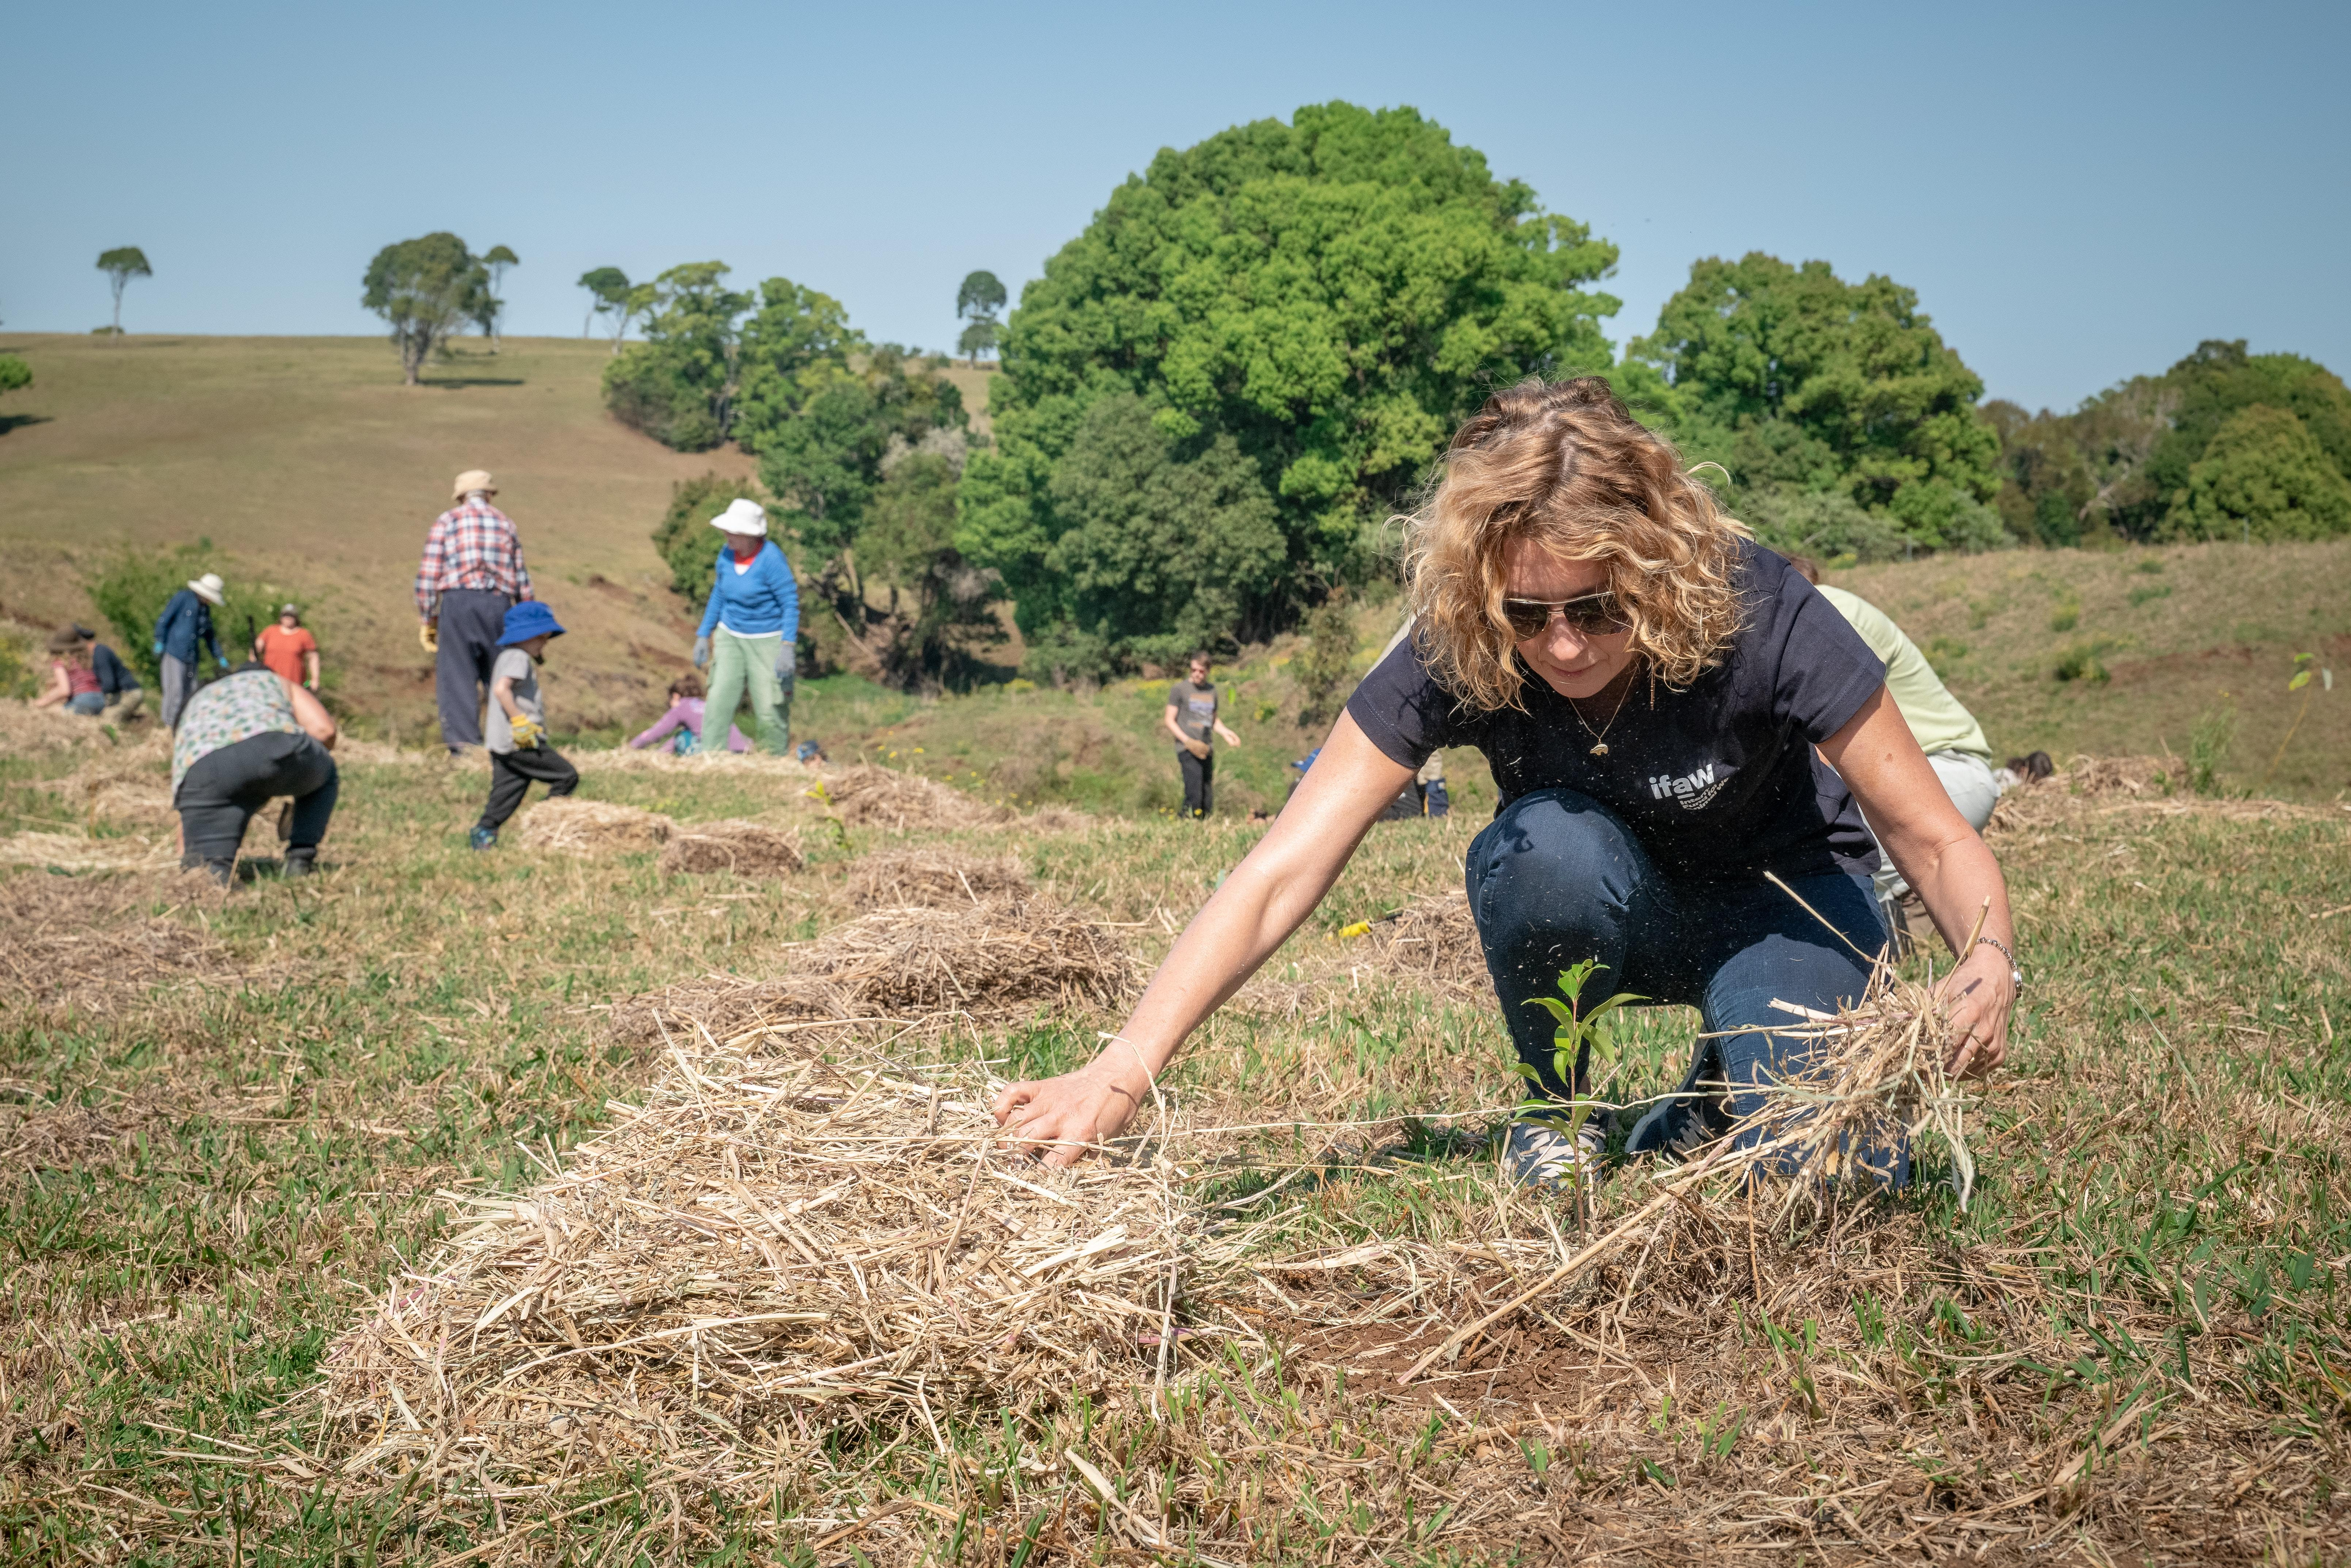 A person crouched down, pulling hay away from a plant, with other people in the background.